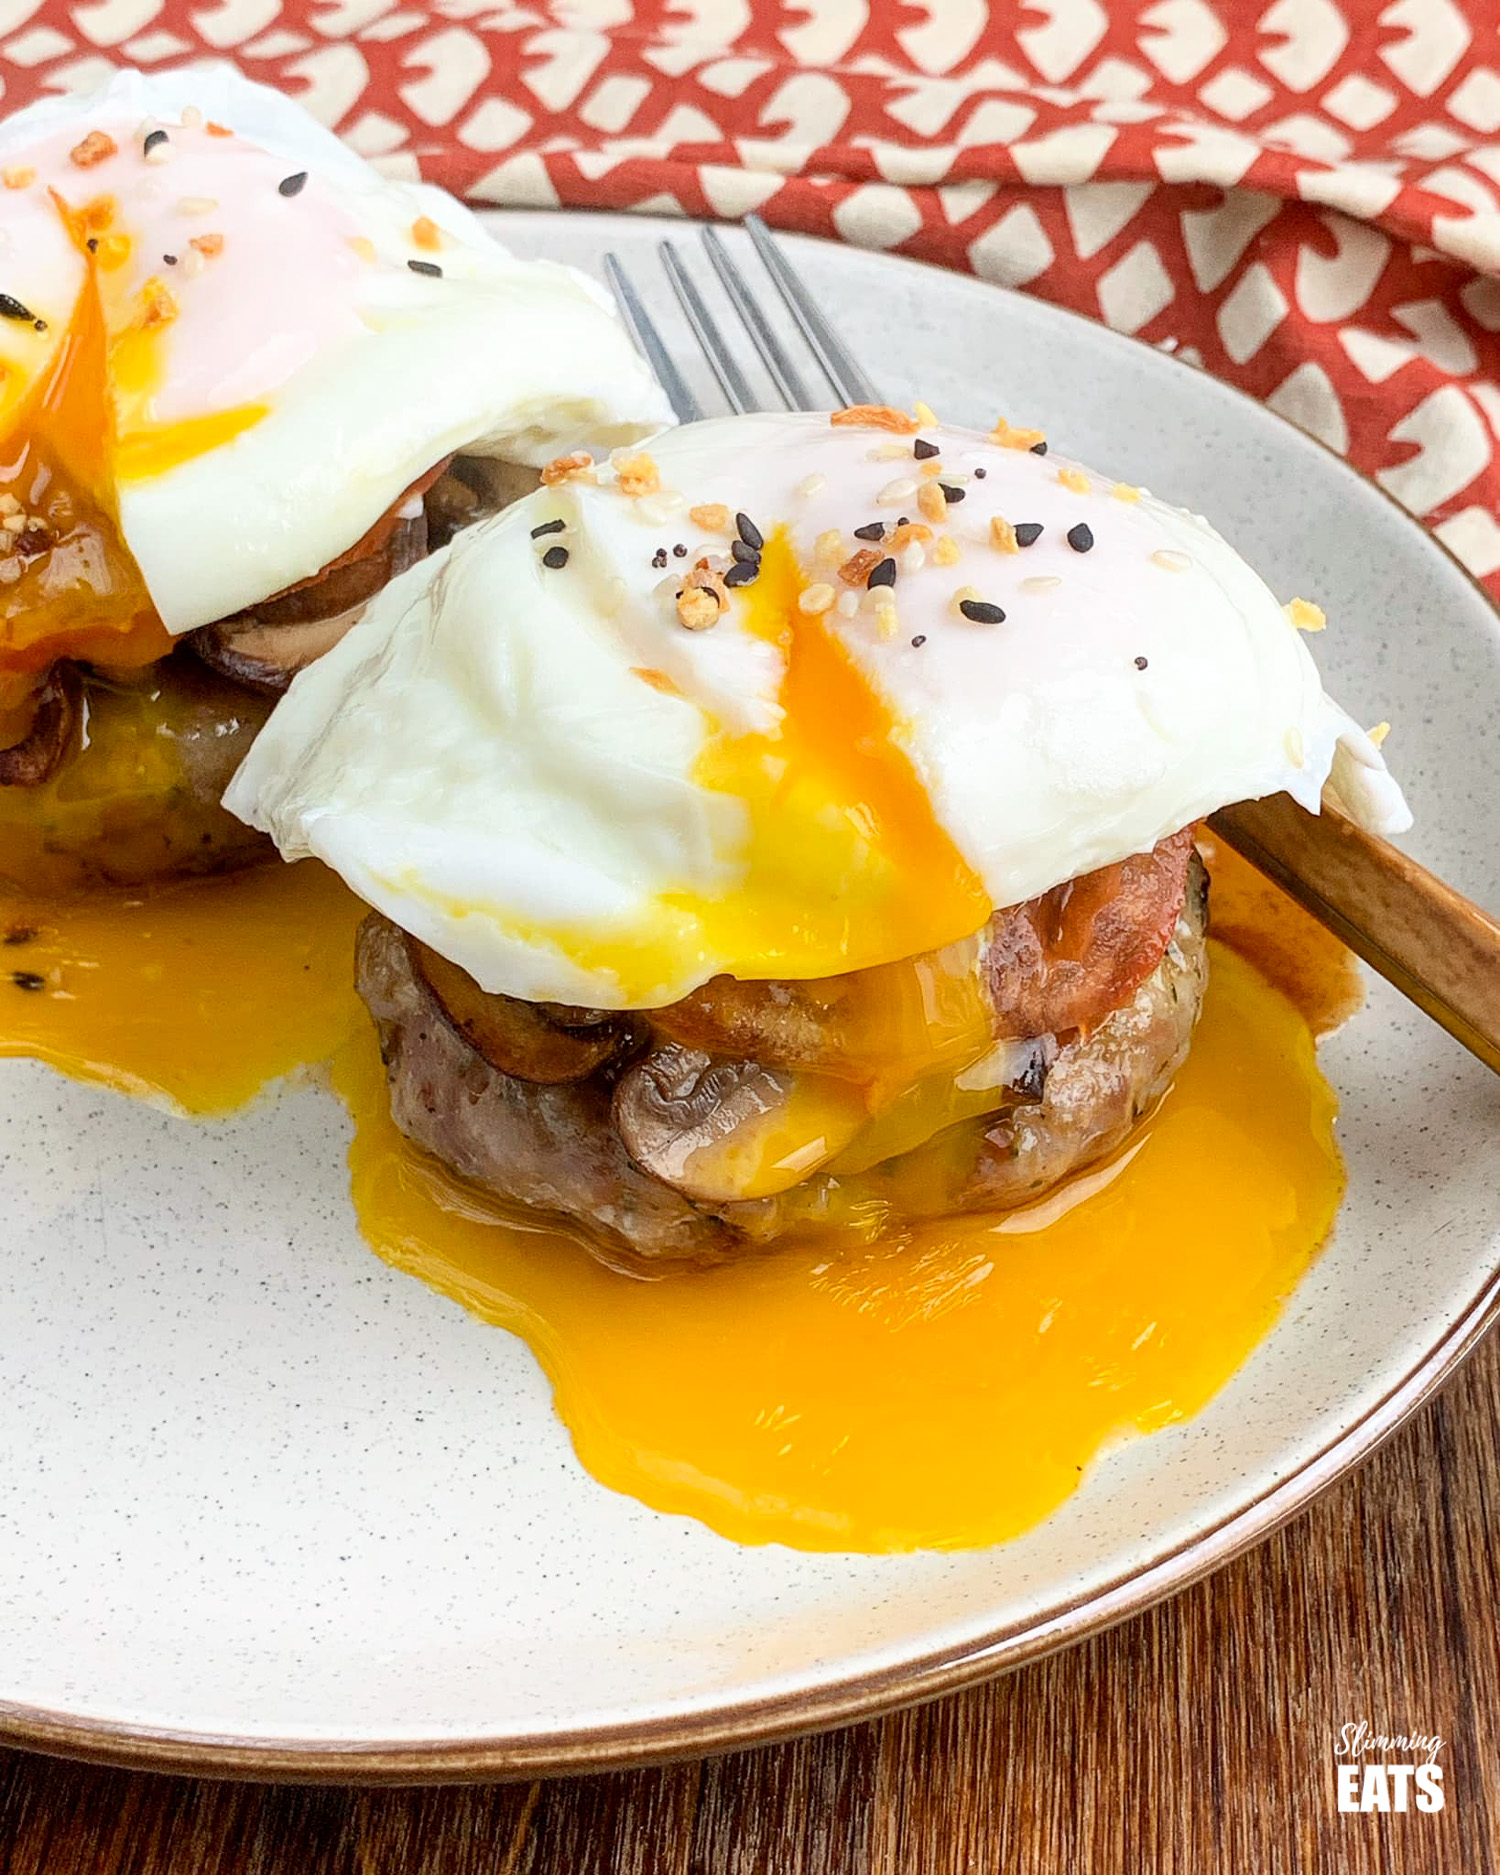 poached eggs over tomato, mushrooms and sausage patties on brown rimmed cream plate